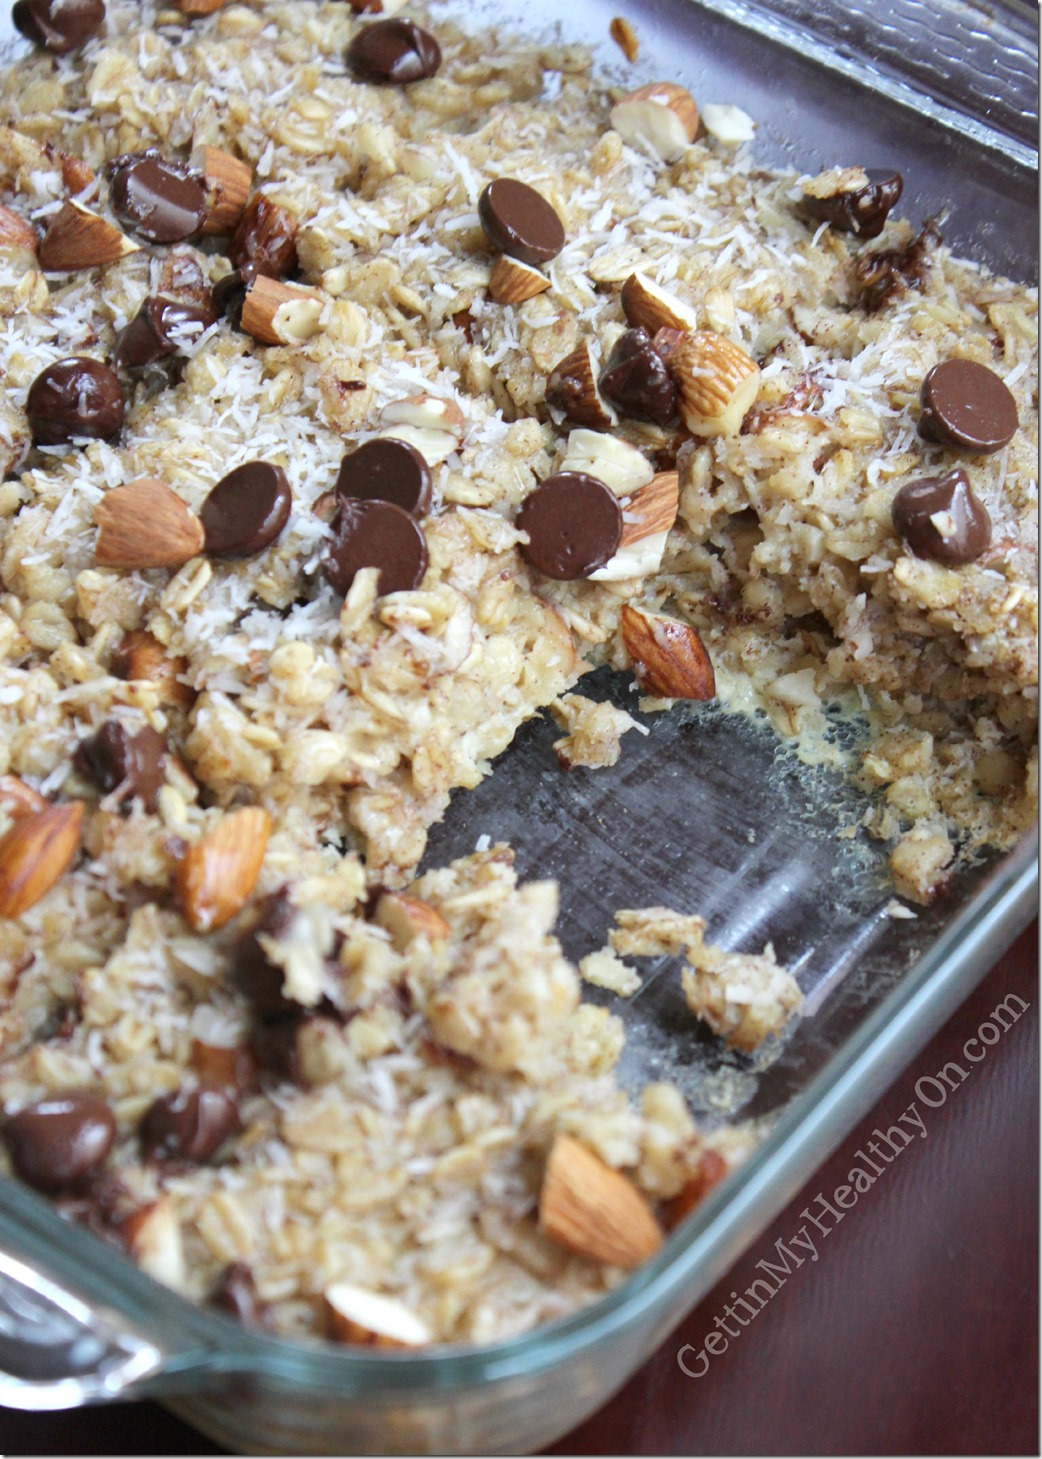 Almond Coconut Baked Oatmeal